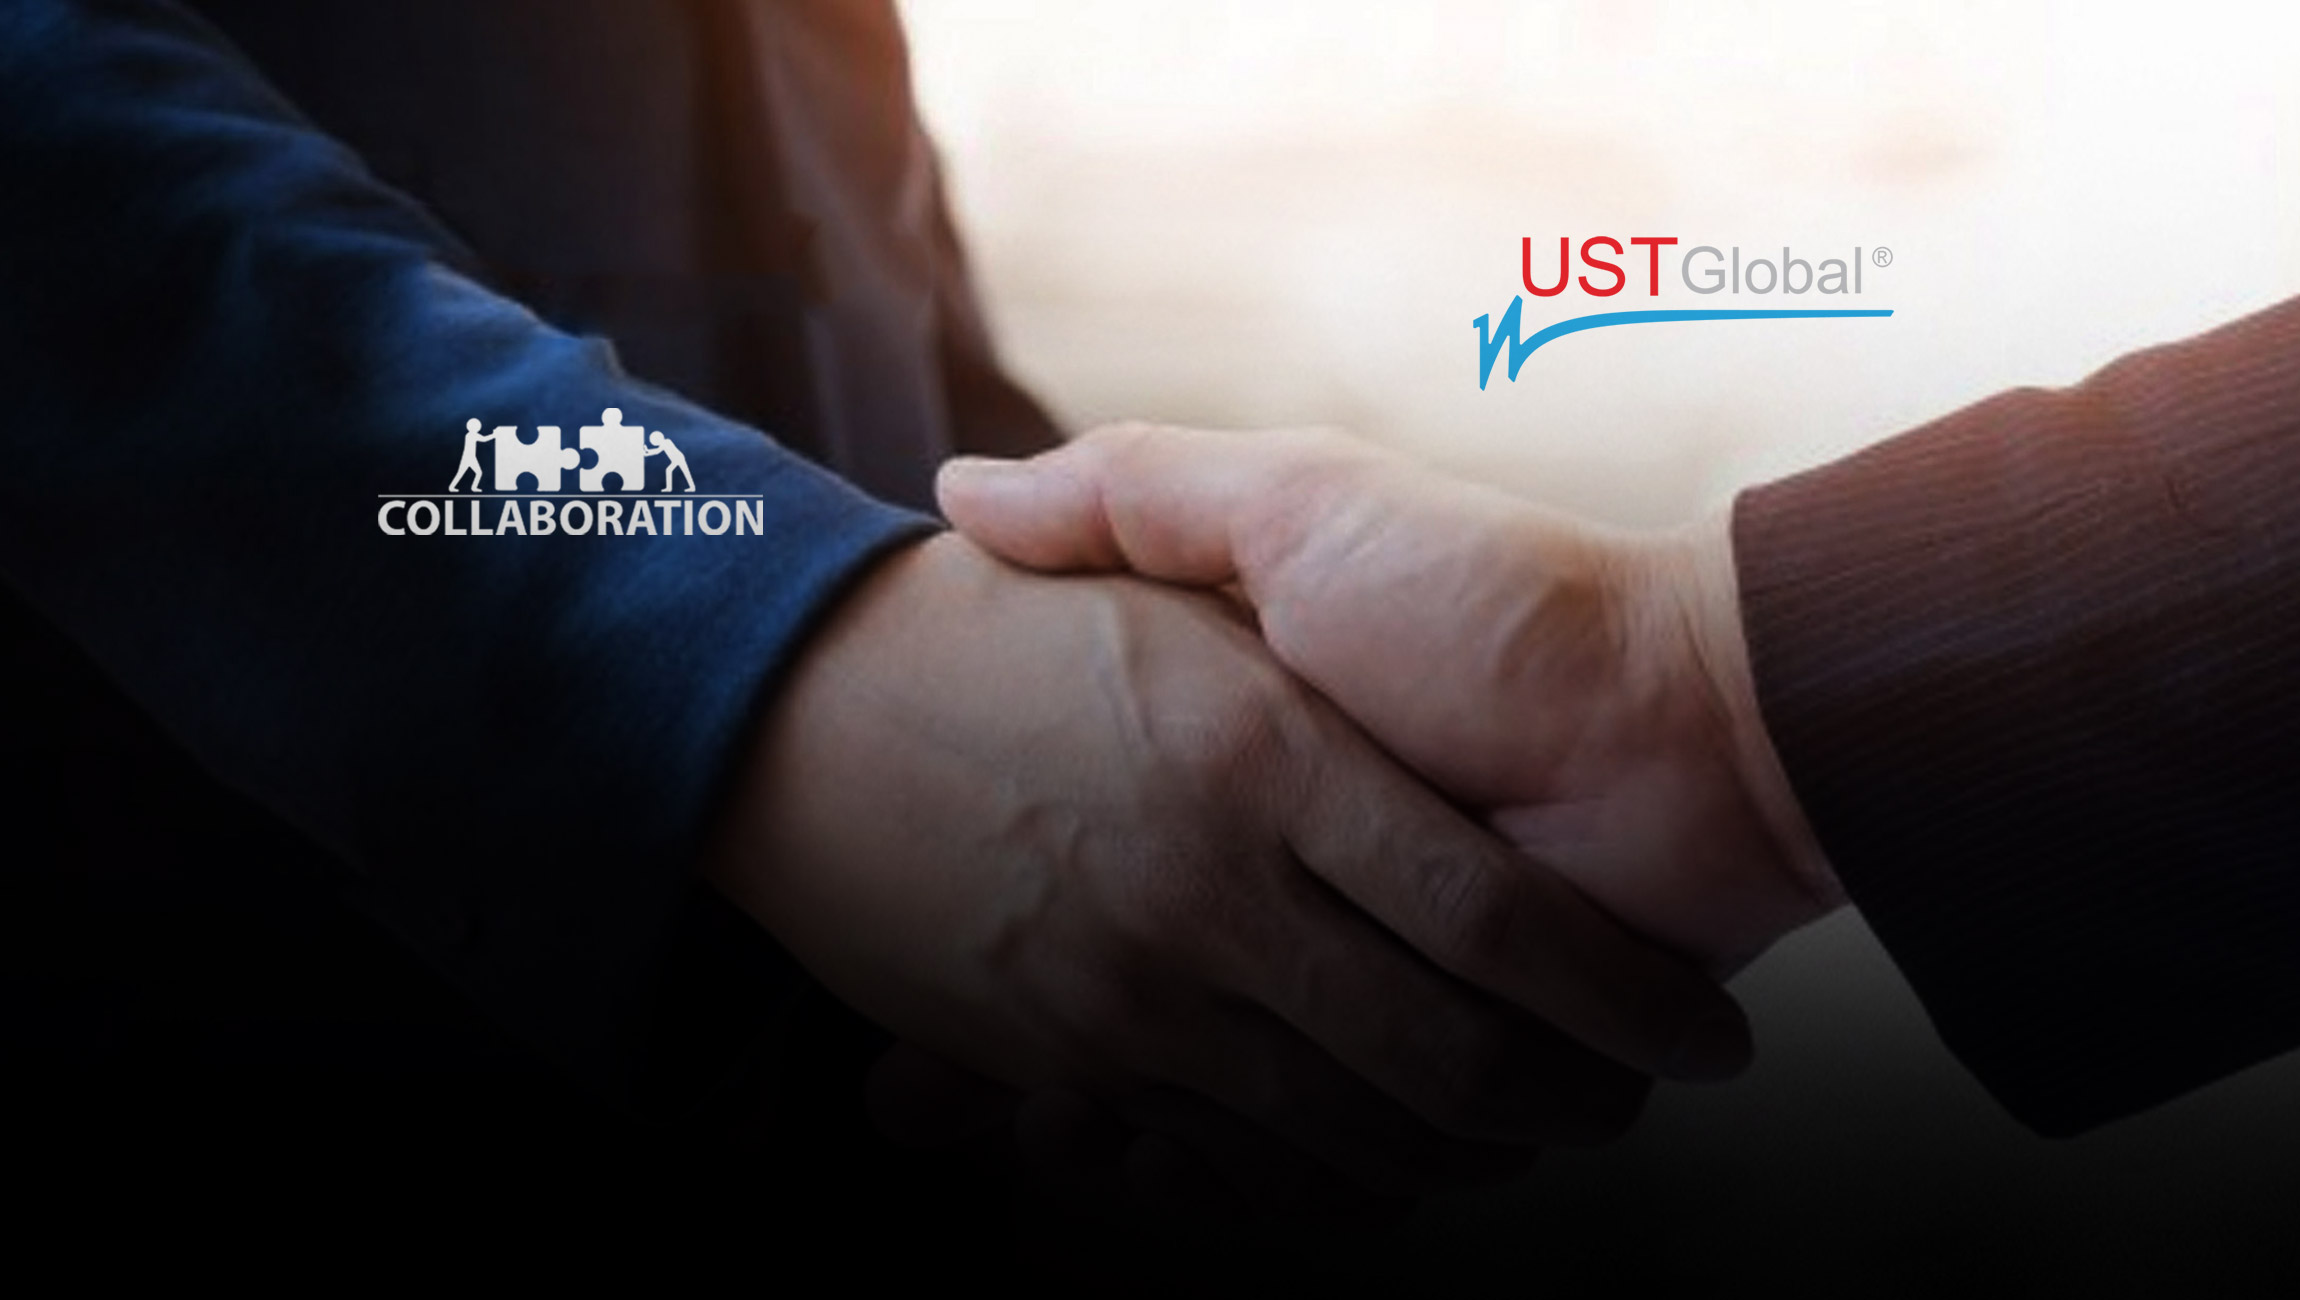 UST Global and GreyOrange Partner to Boost Warehouse and Supply Chain Automation